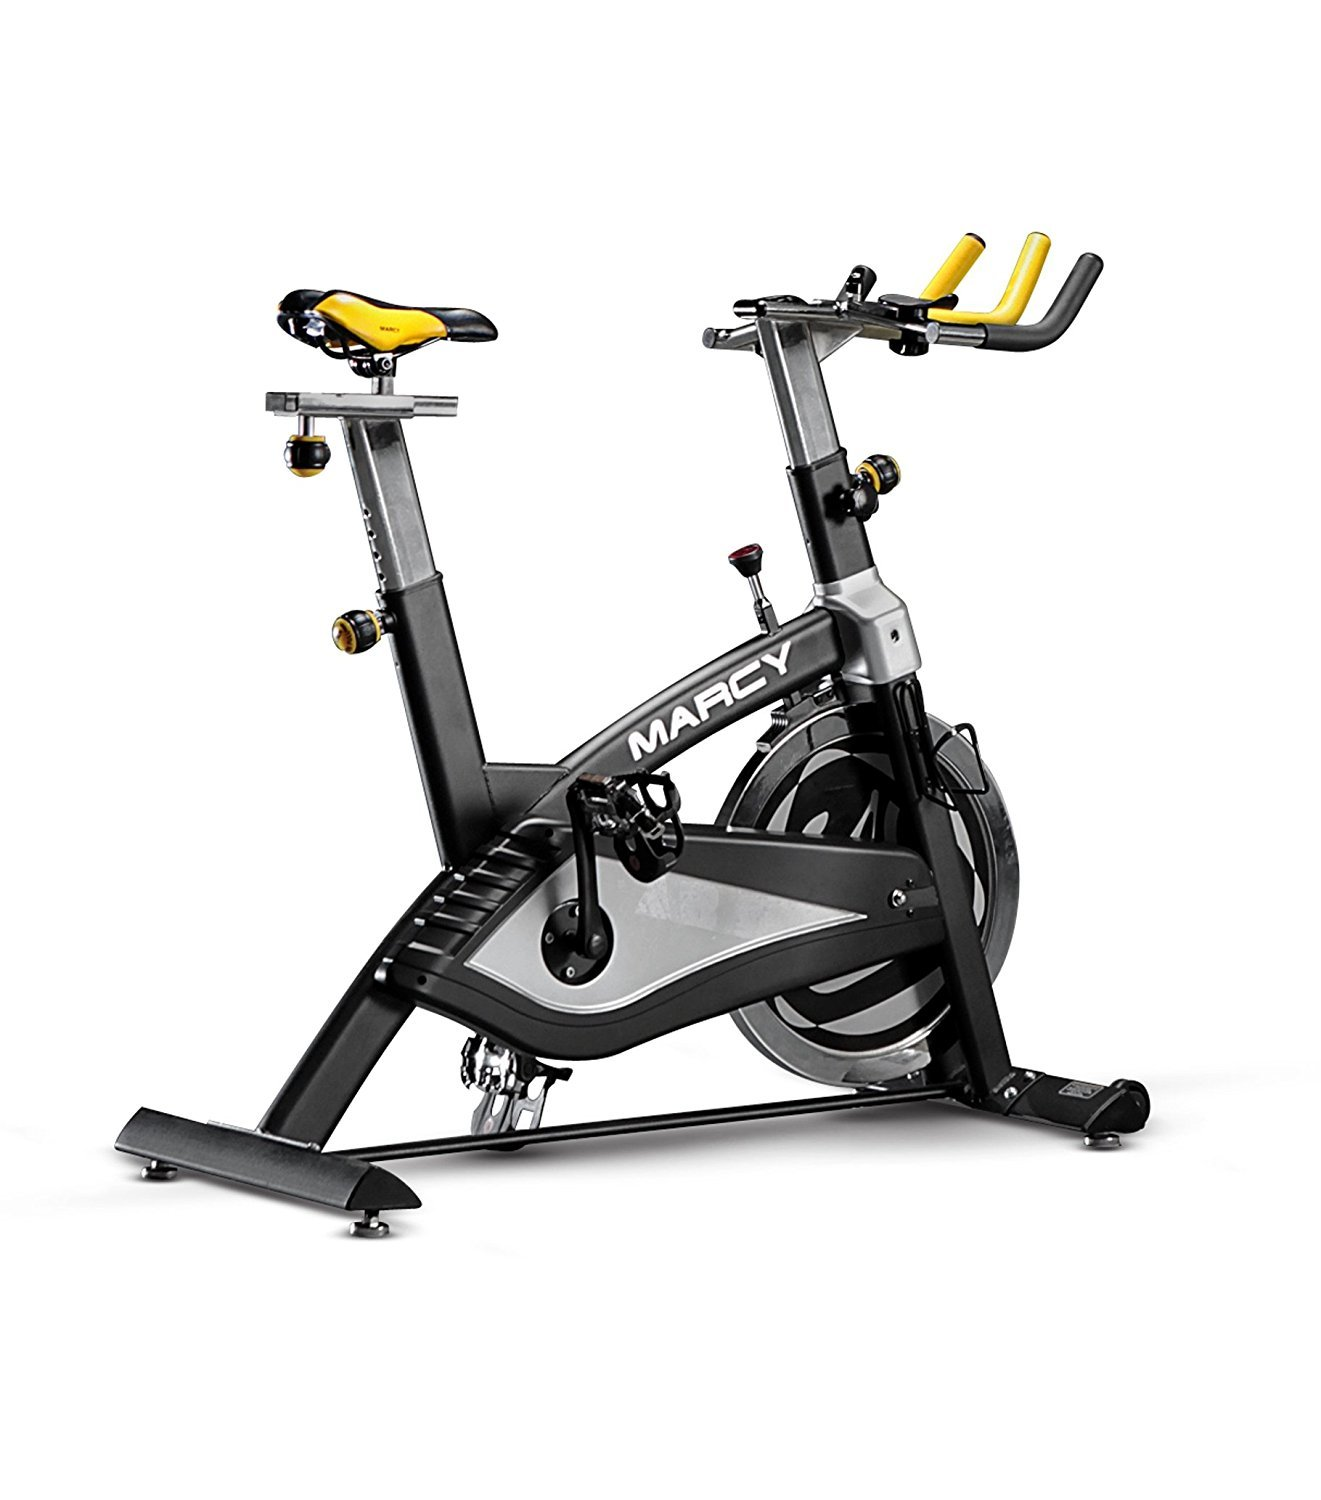 Amazon.com : Marcy Club Revolution Indoor Cycle / Upright Exercise Bike  JX-7038 : Exercise Bikes : Sports & Outdoors